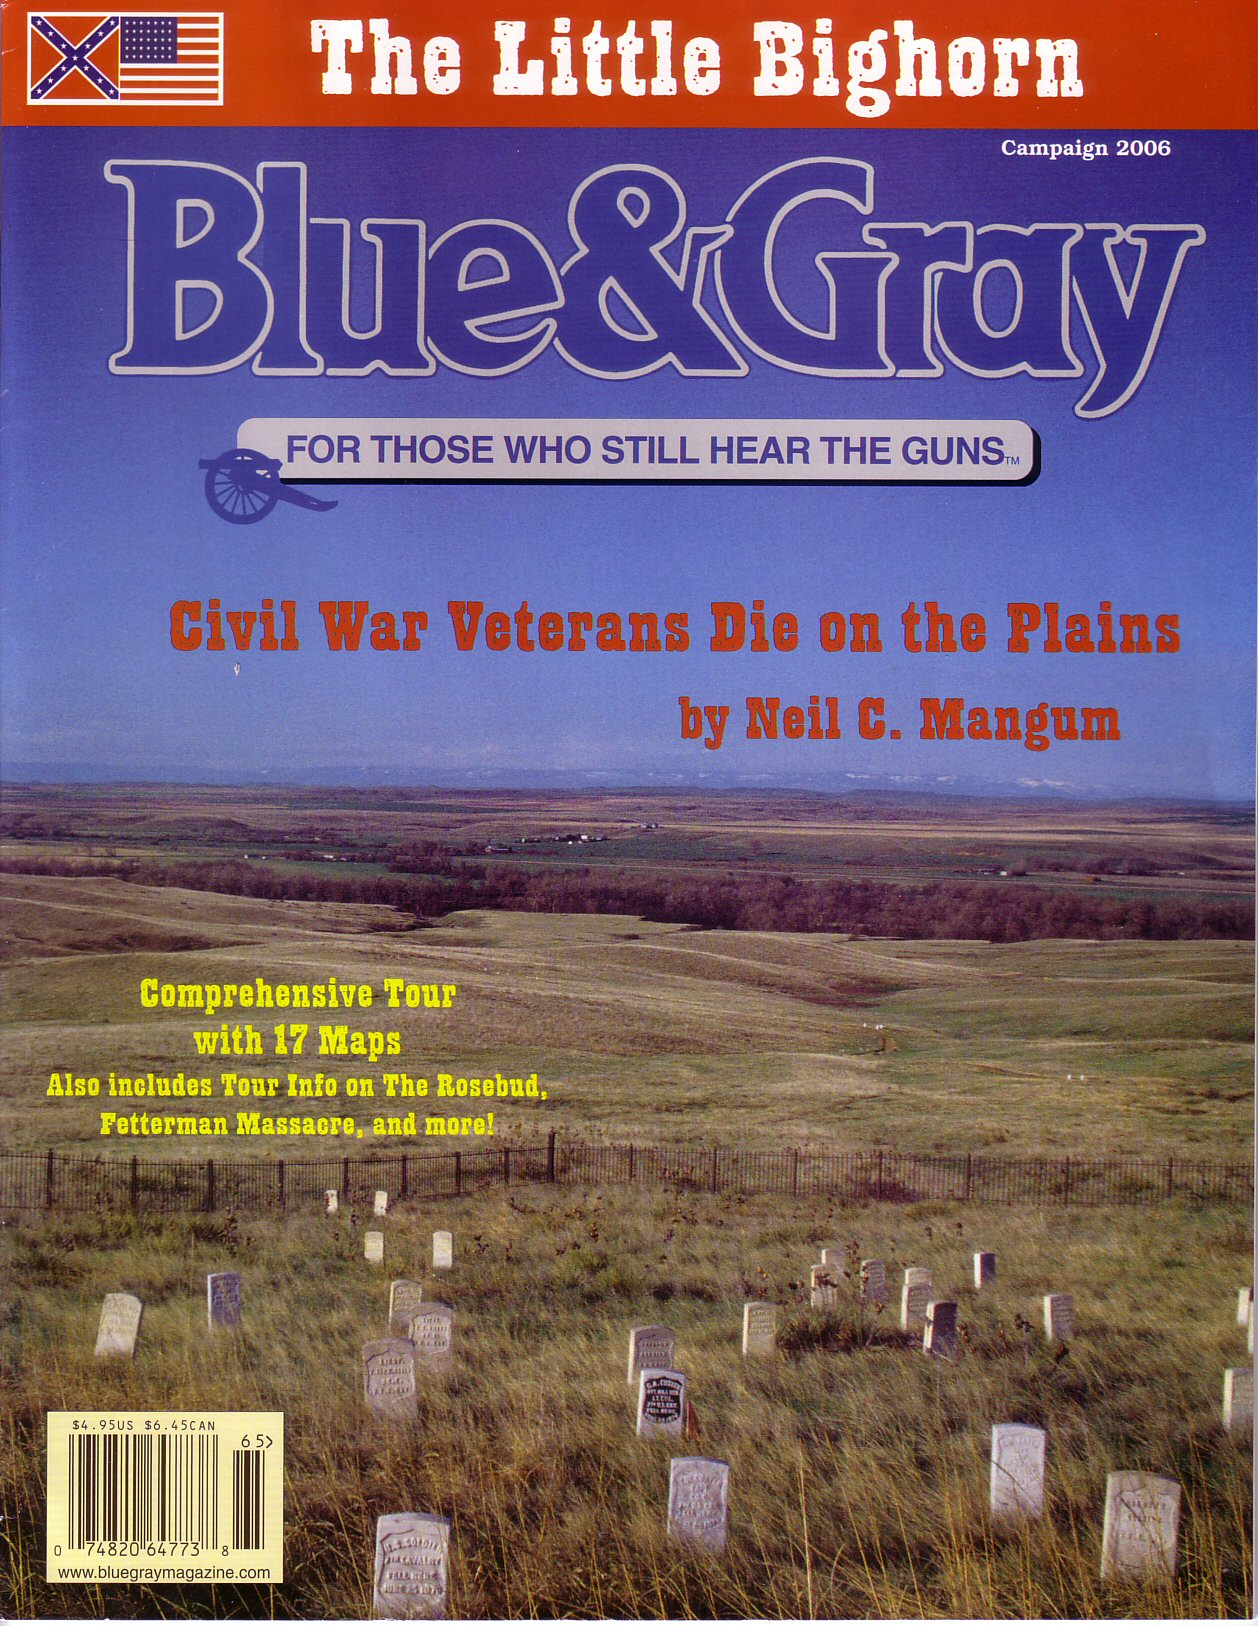 Blue & Gray Magazine, Volume 23, Number 2 (Campaign 2006)